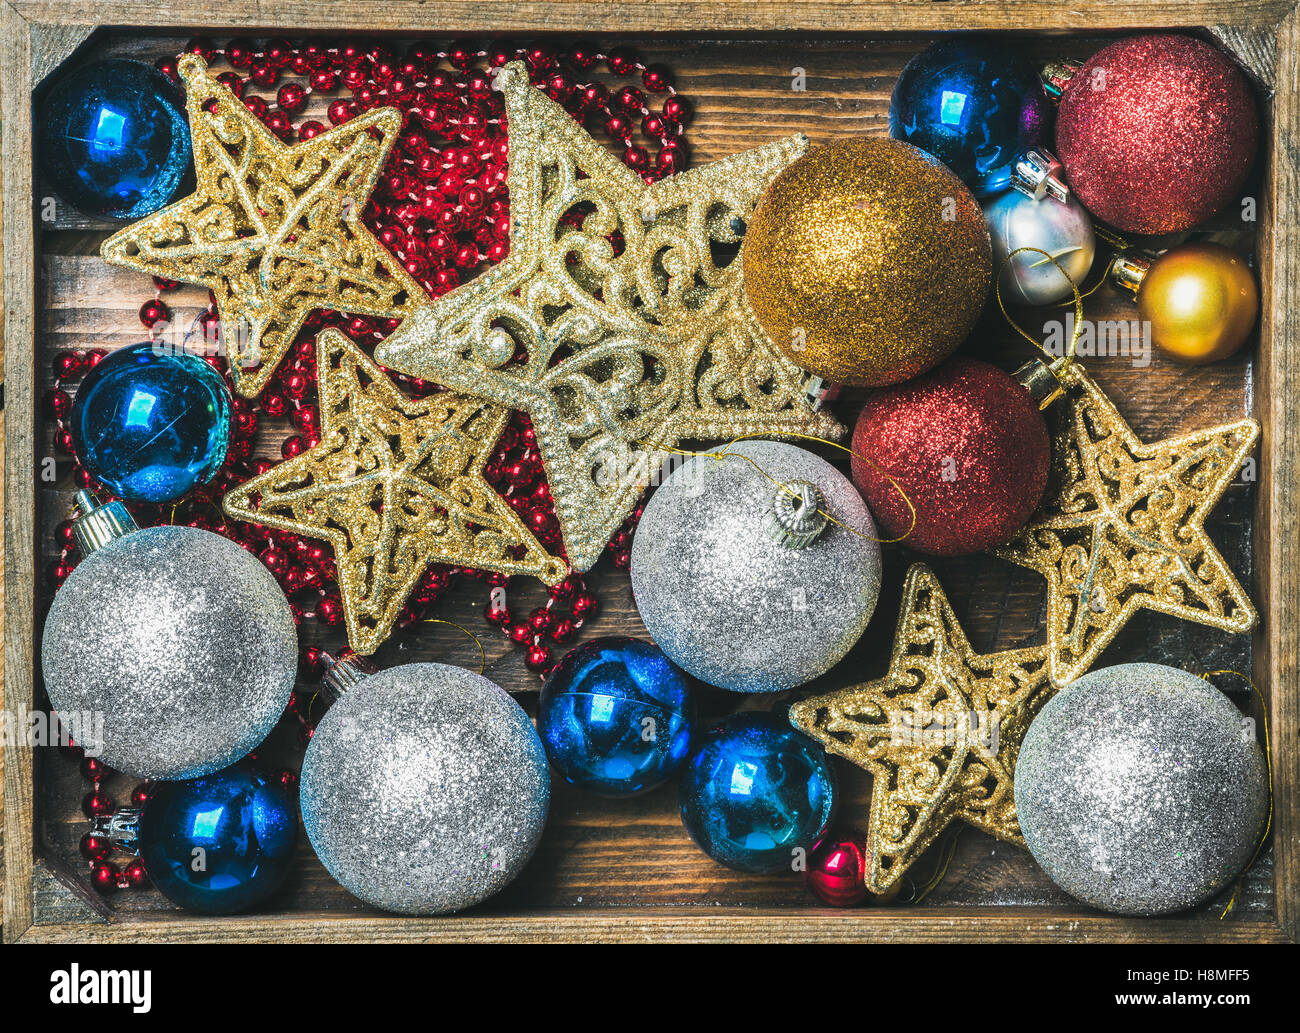 Christmas tree glittering toy stars, colorful balls and garland - Stock Image